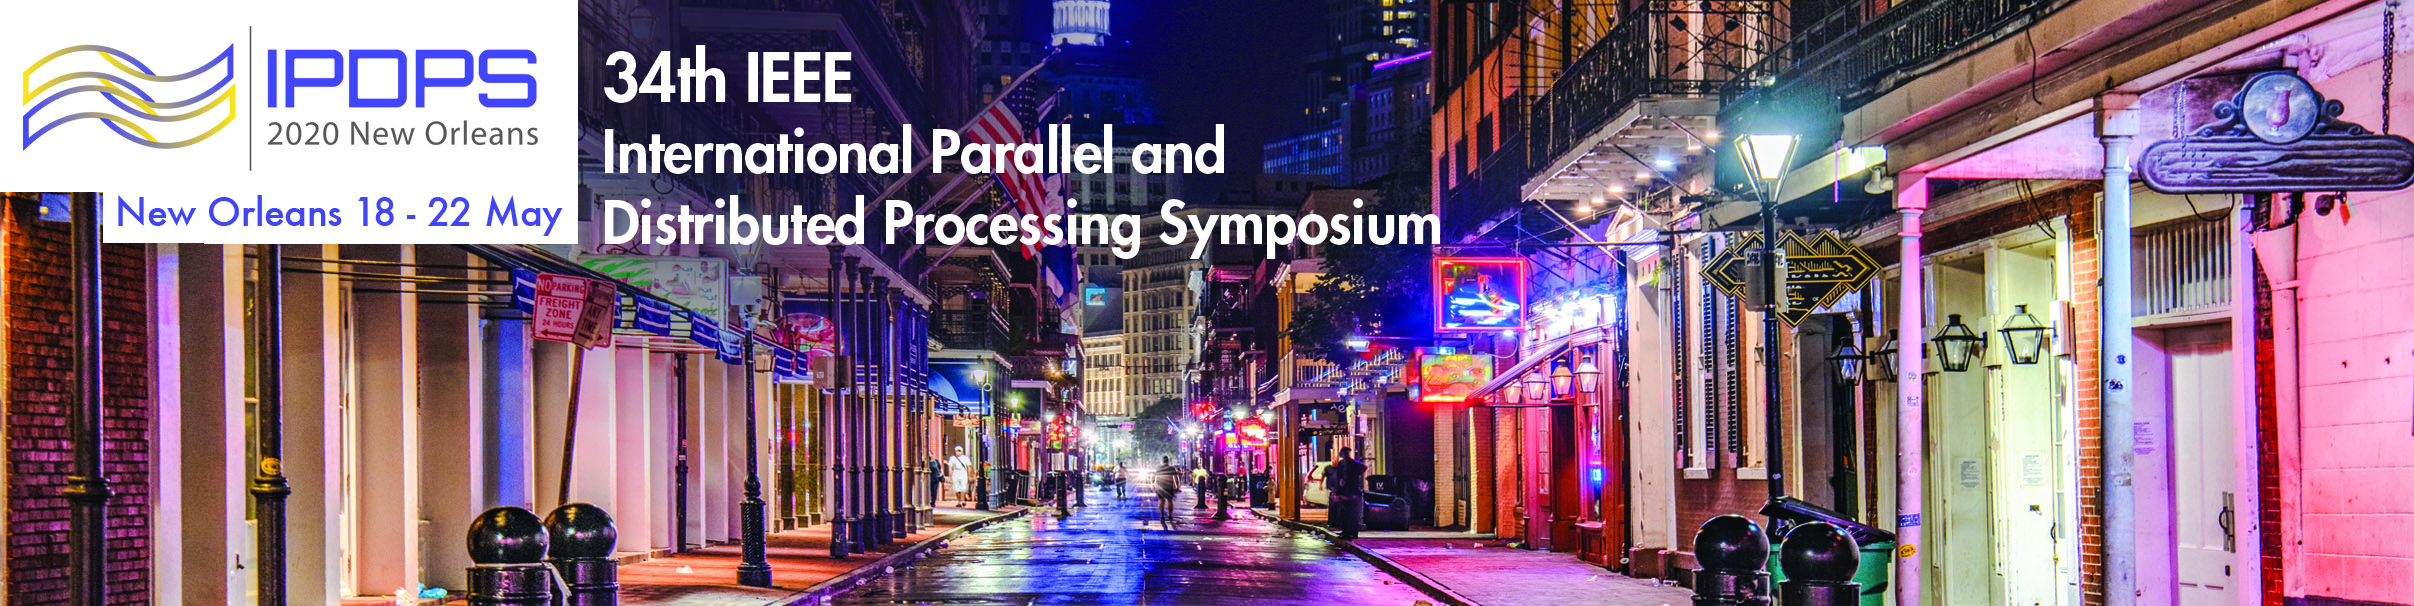 2020 IEEE International Parallel and Distributed Processing Symposium (IPDPS)